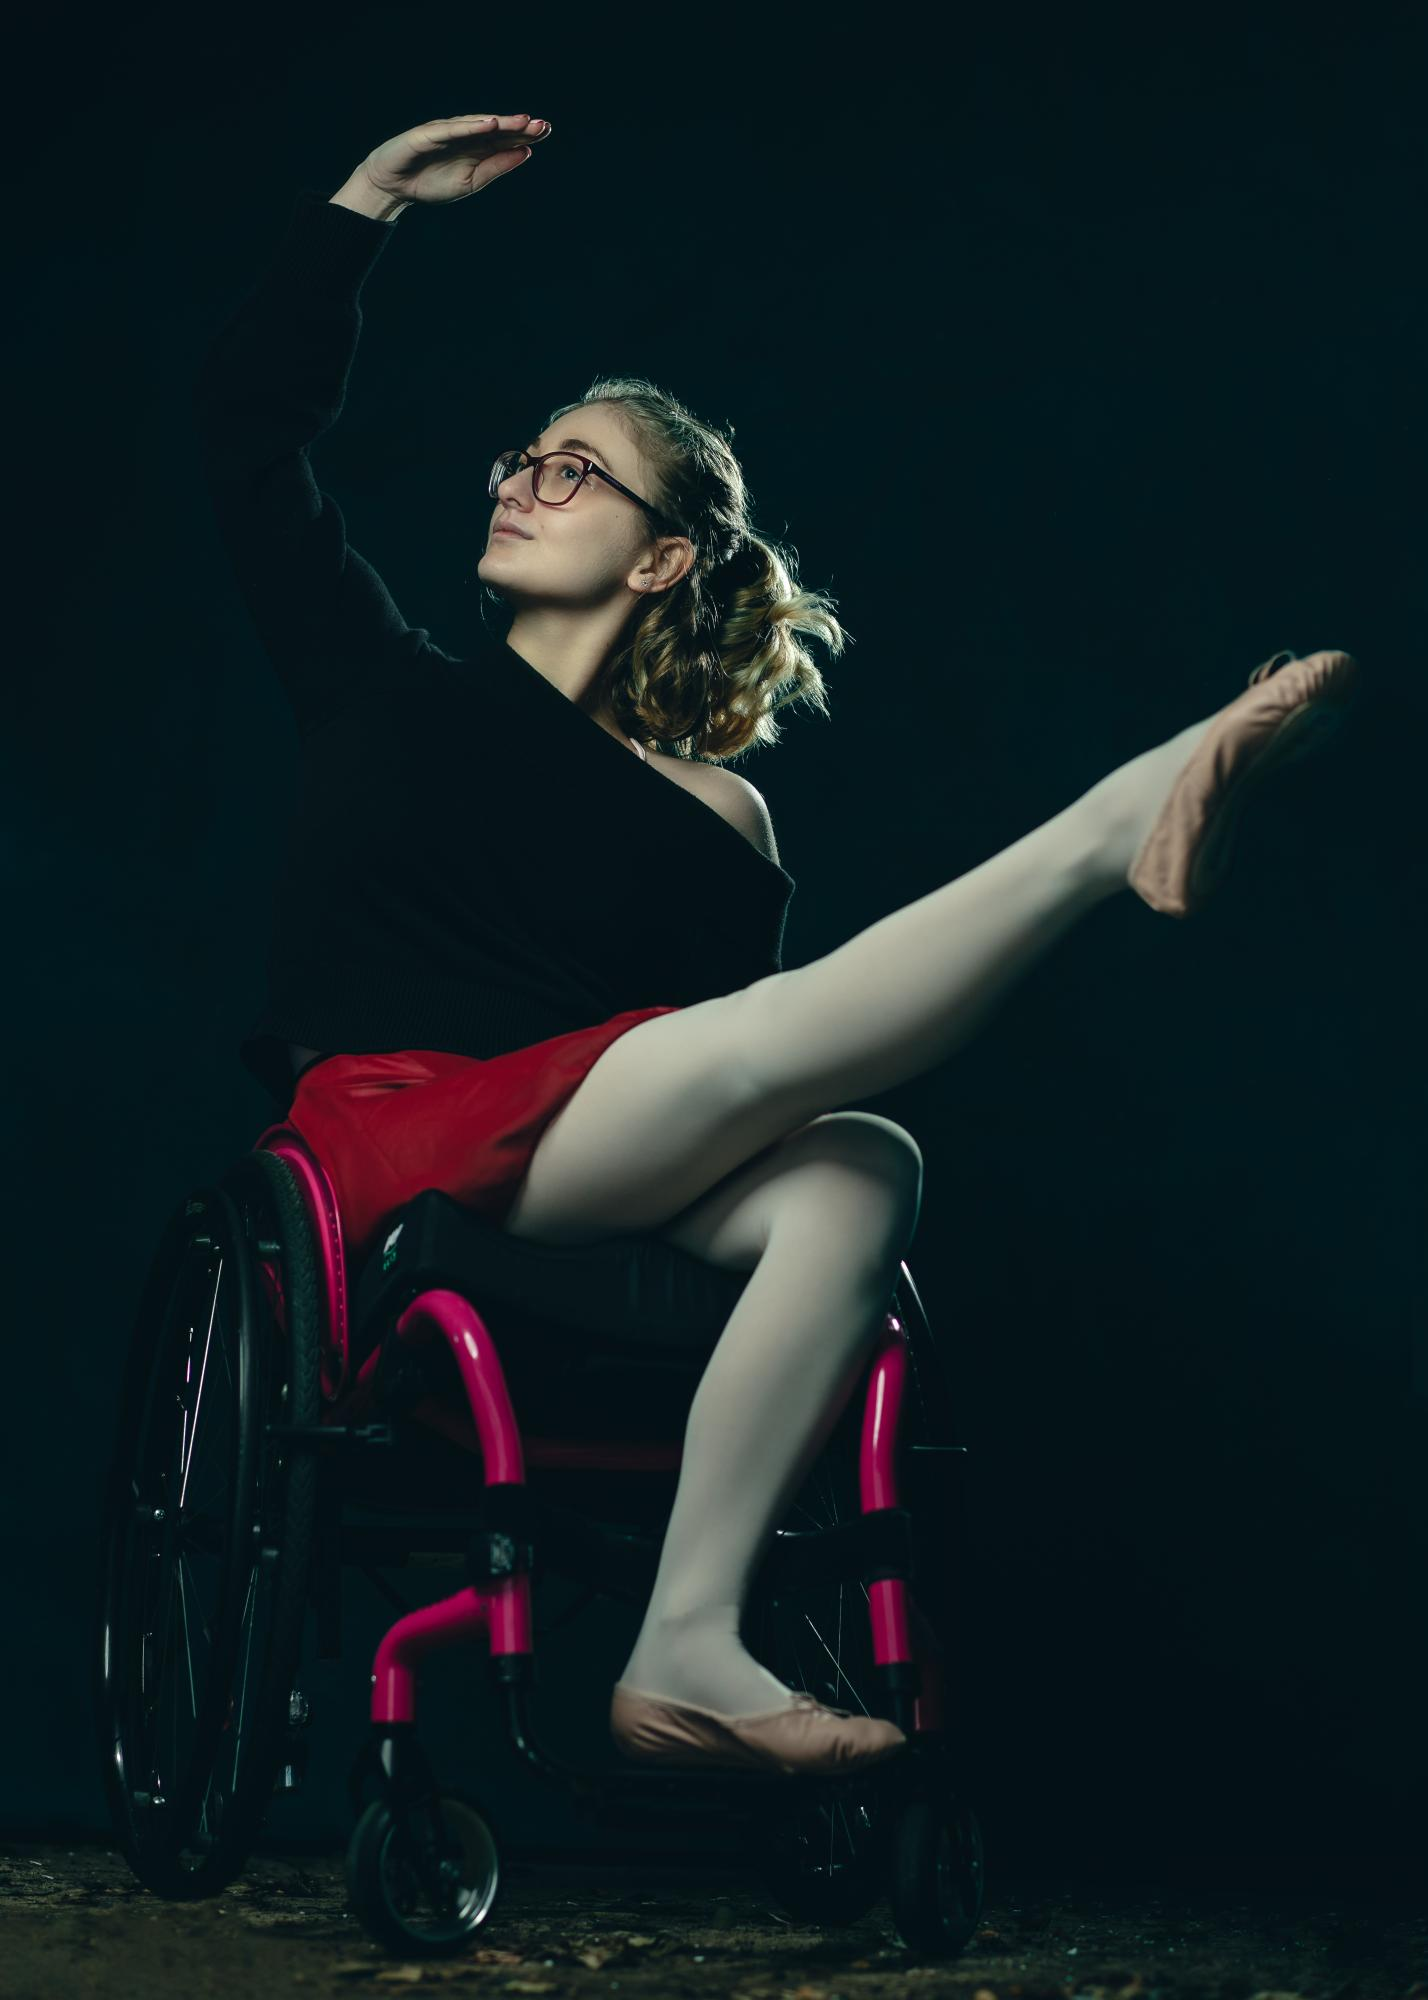 Leah, Ehlers Danlos Syndrome, Zebedee Ma